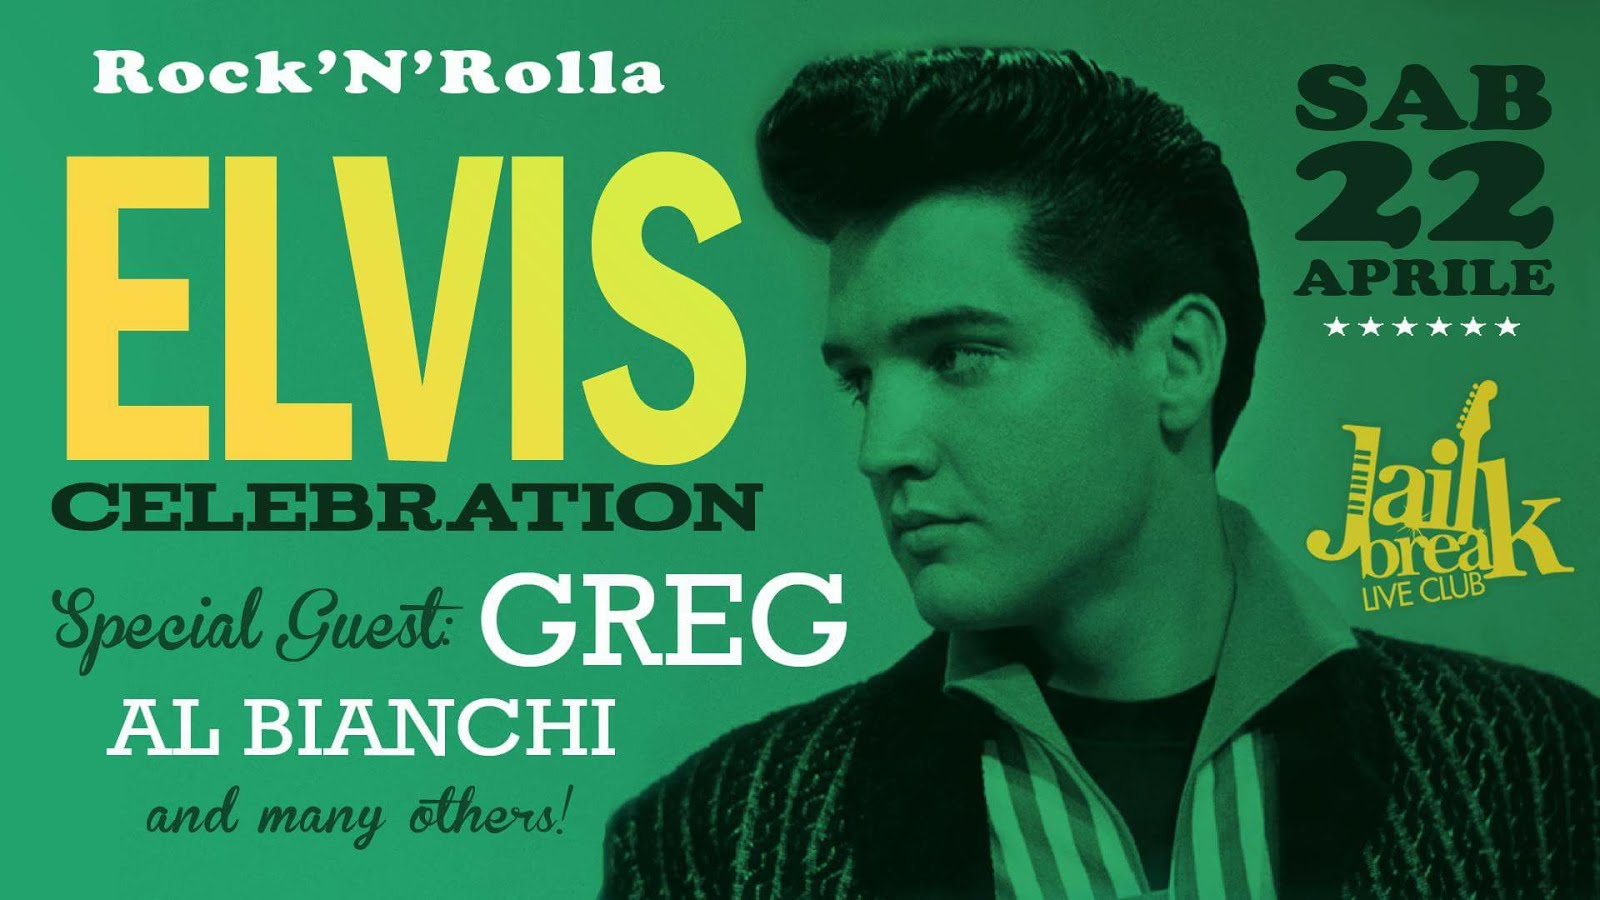 ELVIS CELEBRATION - Elvis Tribute